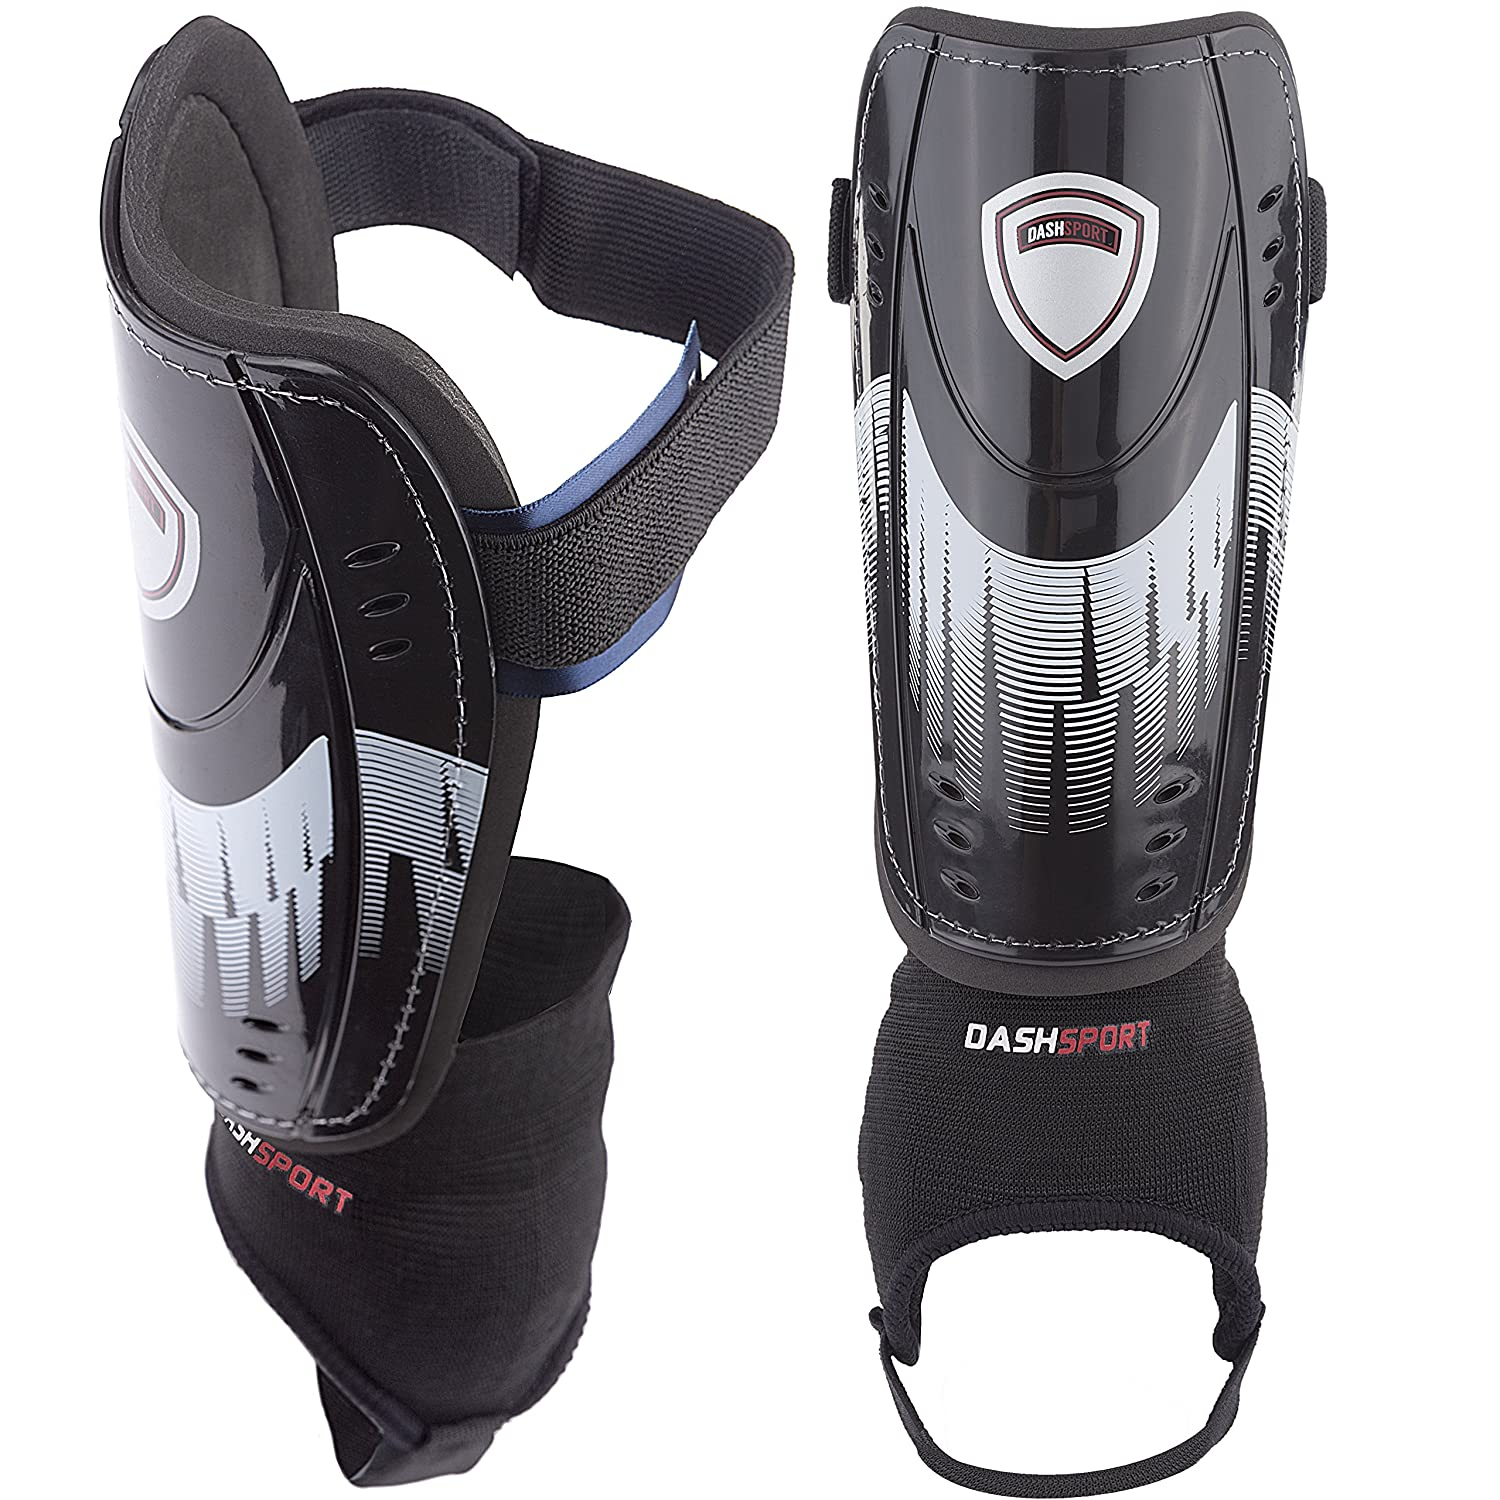 Soccer Shin Guards – ユースサイズ – by dashsport – Bestキッズ用サッカー機器with足首袖 – Great for Boys and Girls B01EE9EYPY Small 3'11 4'7|ホワイト ホワイト Small 3'11 4'7